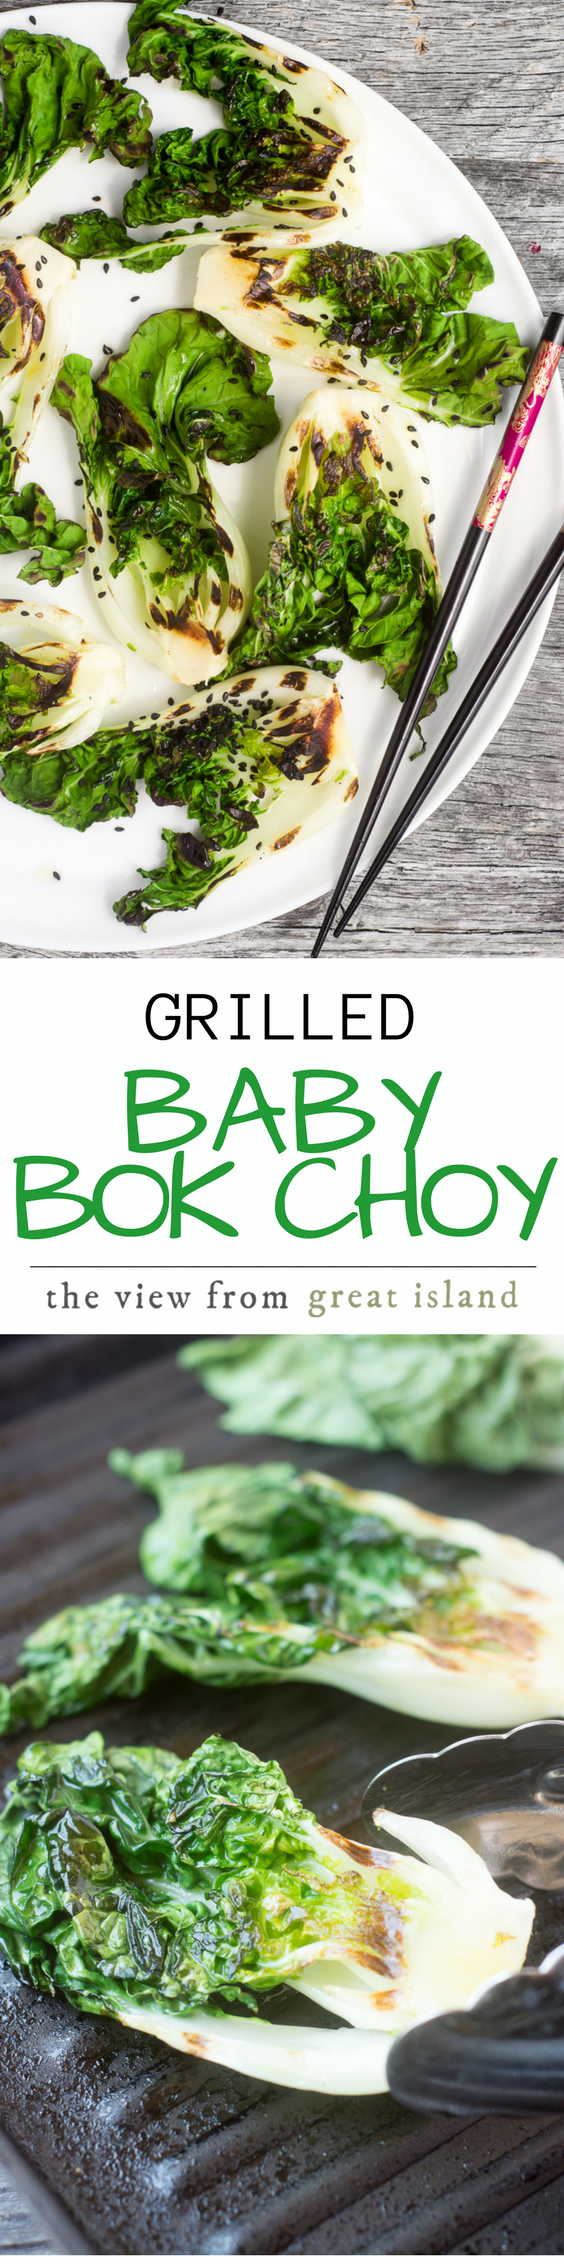 Grilled Baby Bok Choy is a one minute wonder --- a quick stint on a searing hot grill turns an under-appreciated veggie into a rock star --- a little bit of honey sesame glaze doesn't hurt either! #sidedish #healthy #grilledvegetables #greens #Asiangreens #grilledlettuce